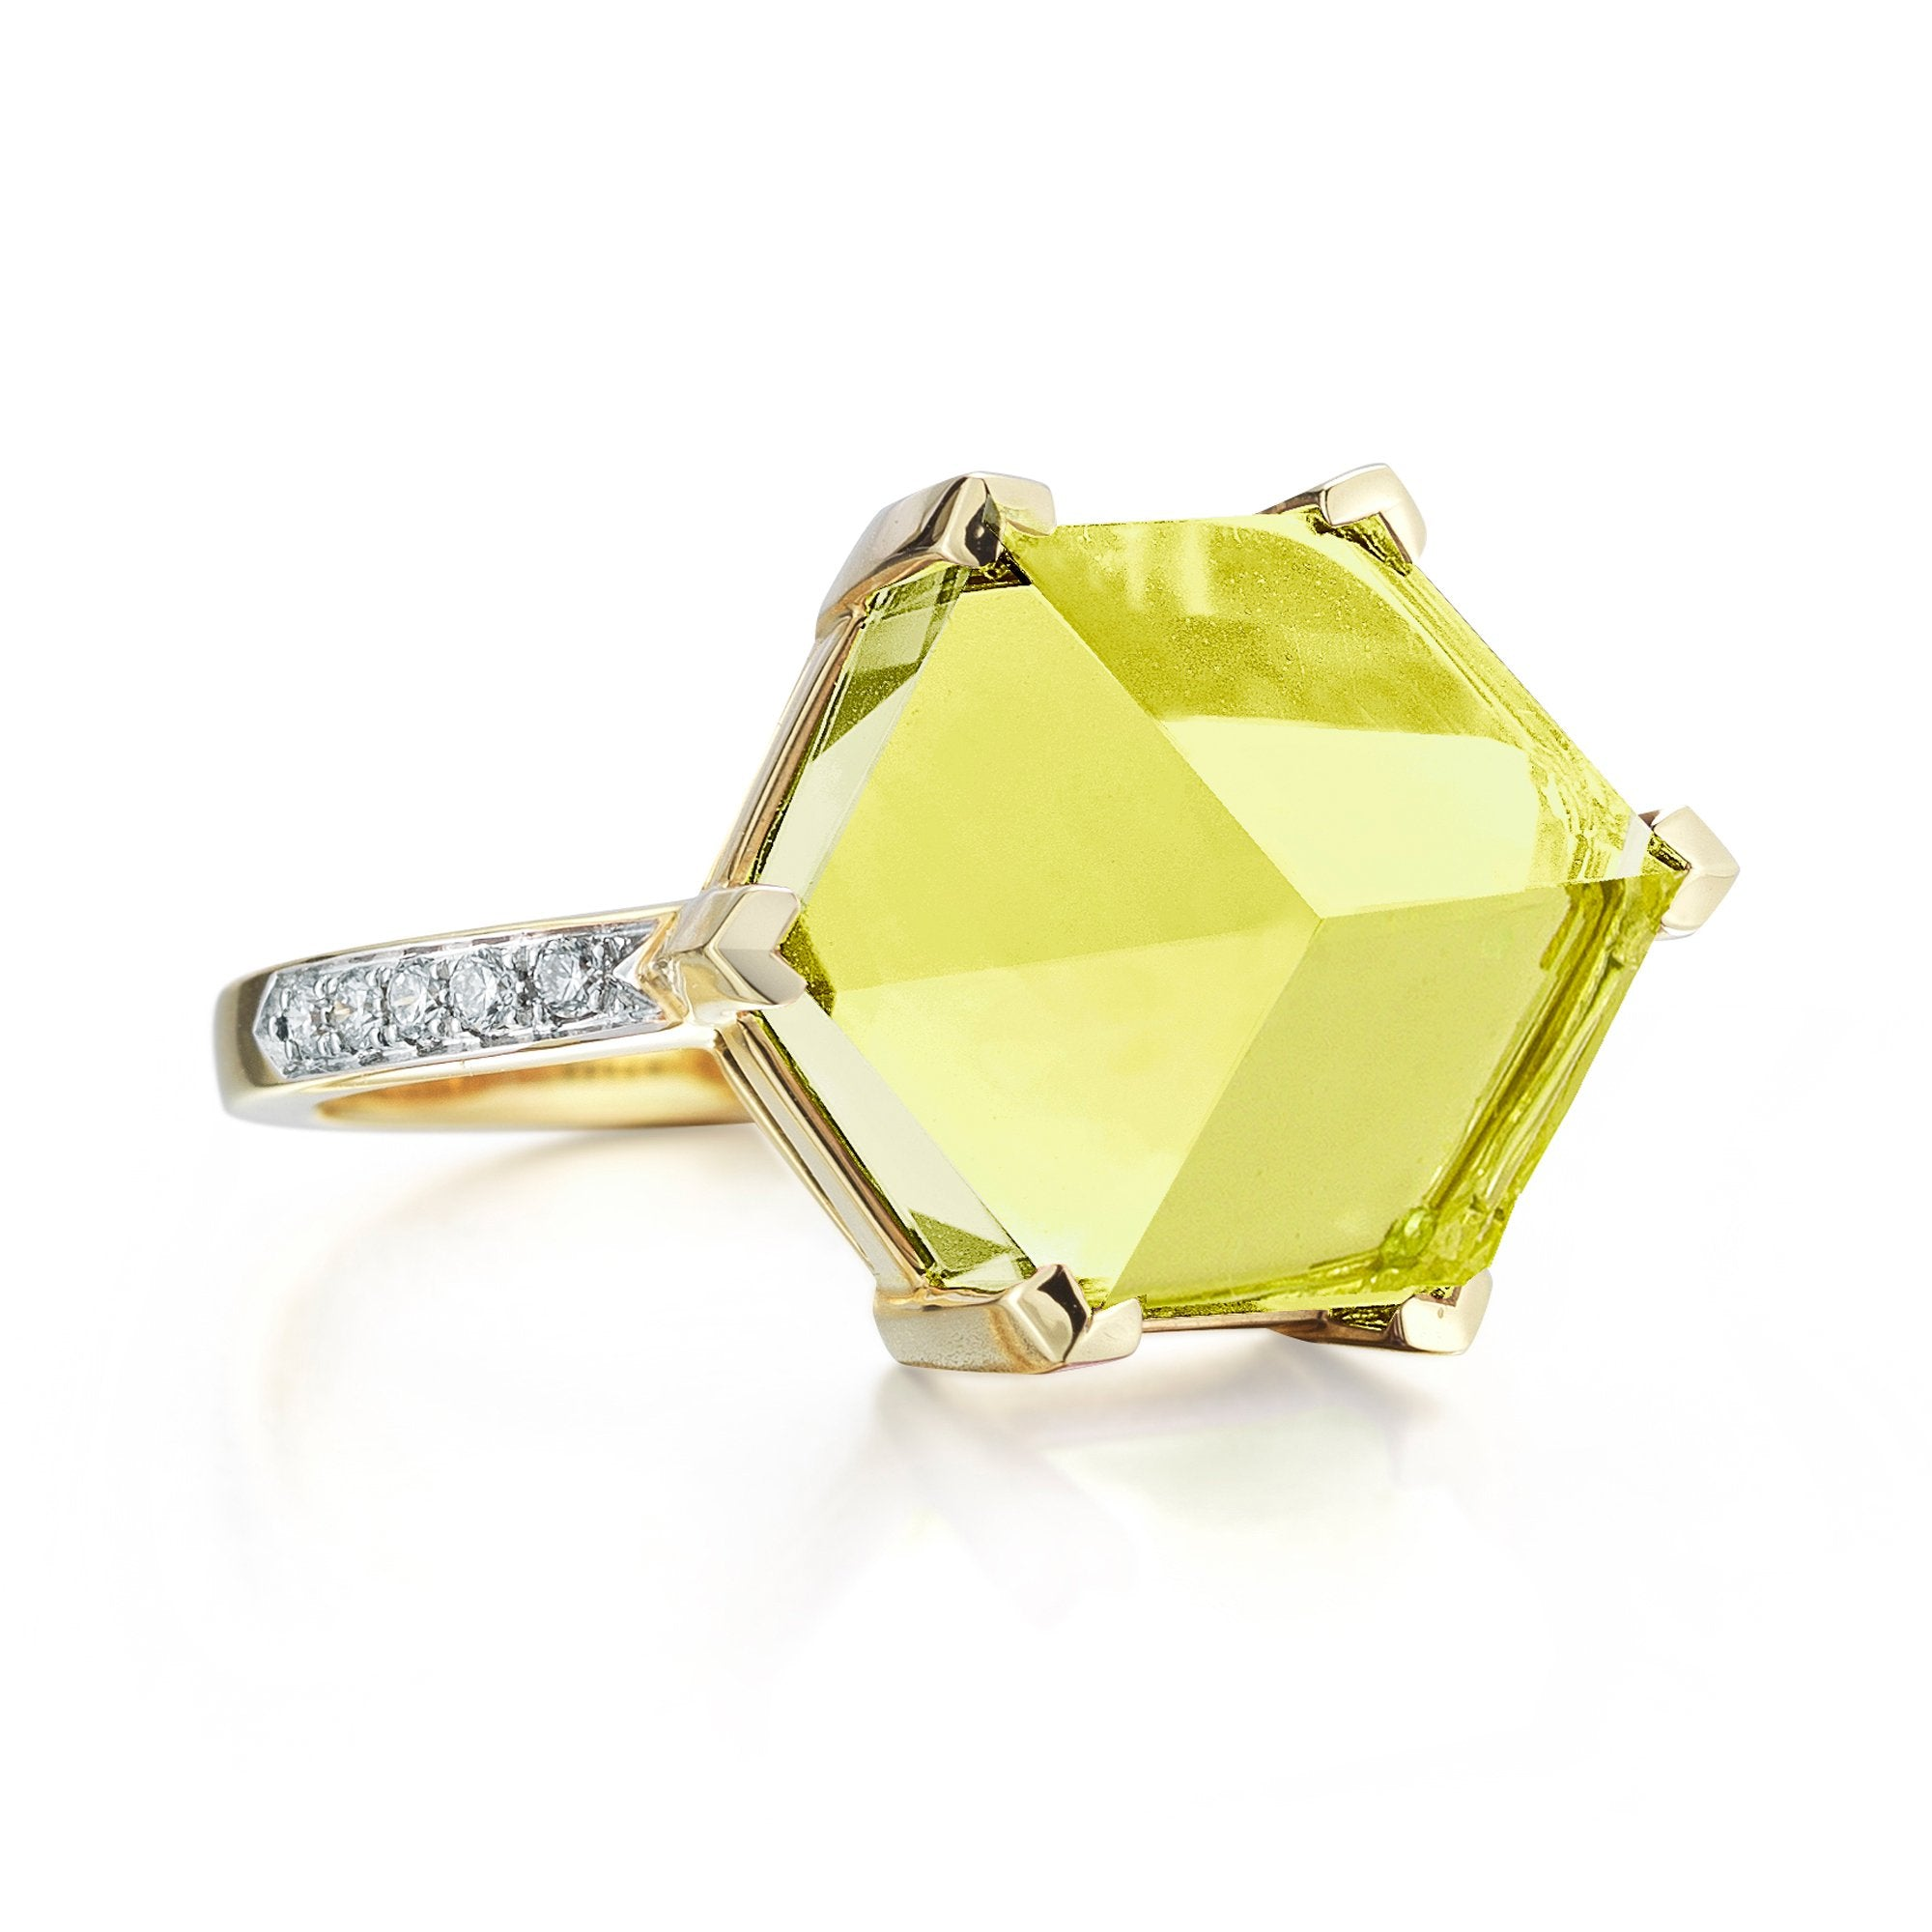 Lemon Citrine 'Brillante® Valentina' Ring, Medium - Paolo Costagli - 1